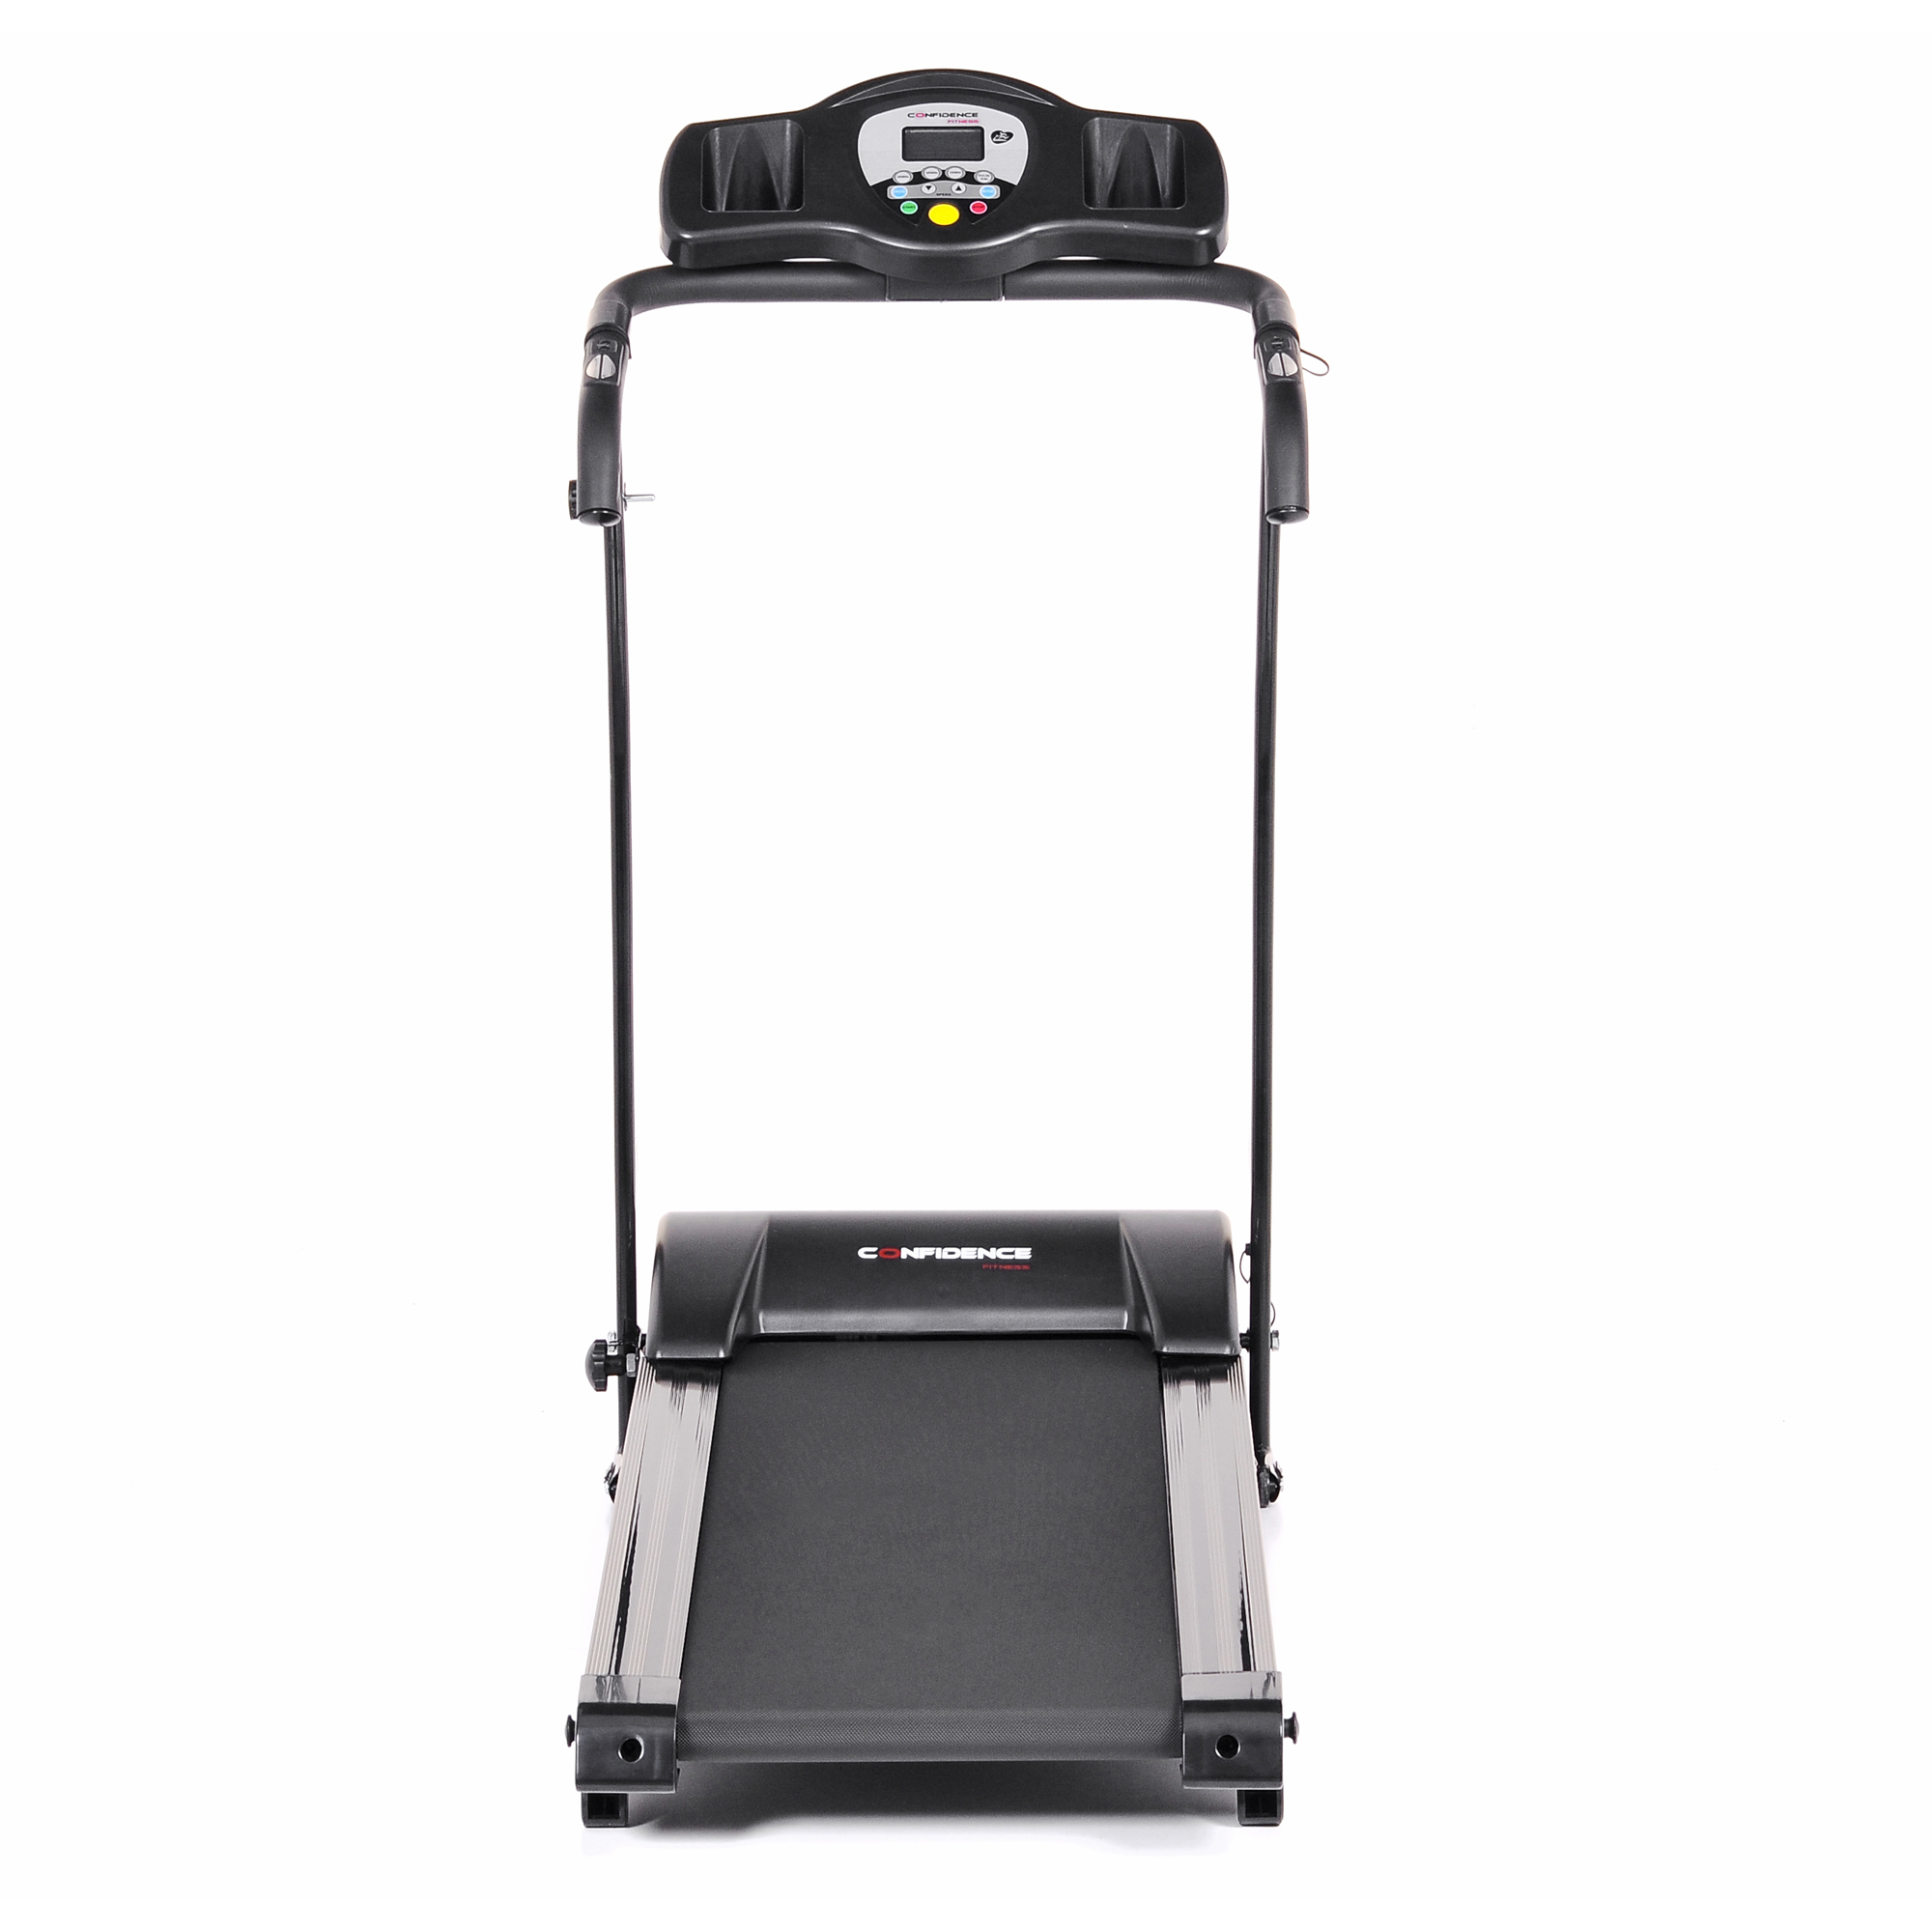 Confidence gtr power pro 1100w motorized electric for Goplus 1000w folding treadmill electric motorized power running jogging machine